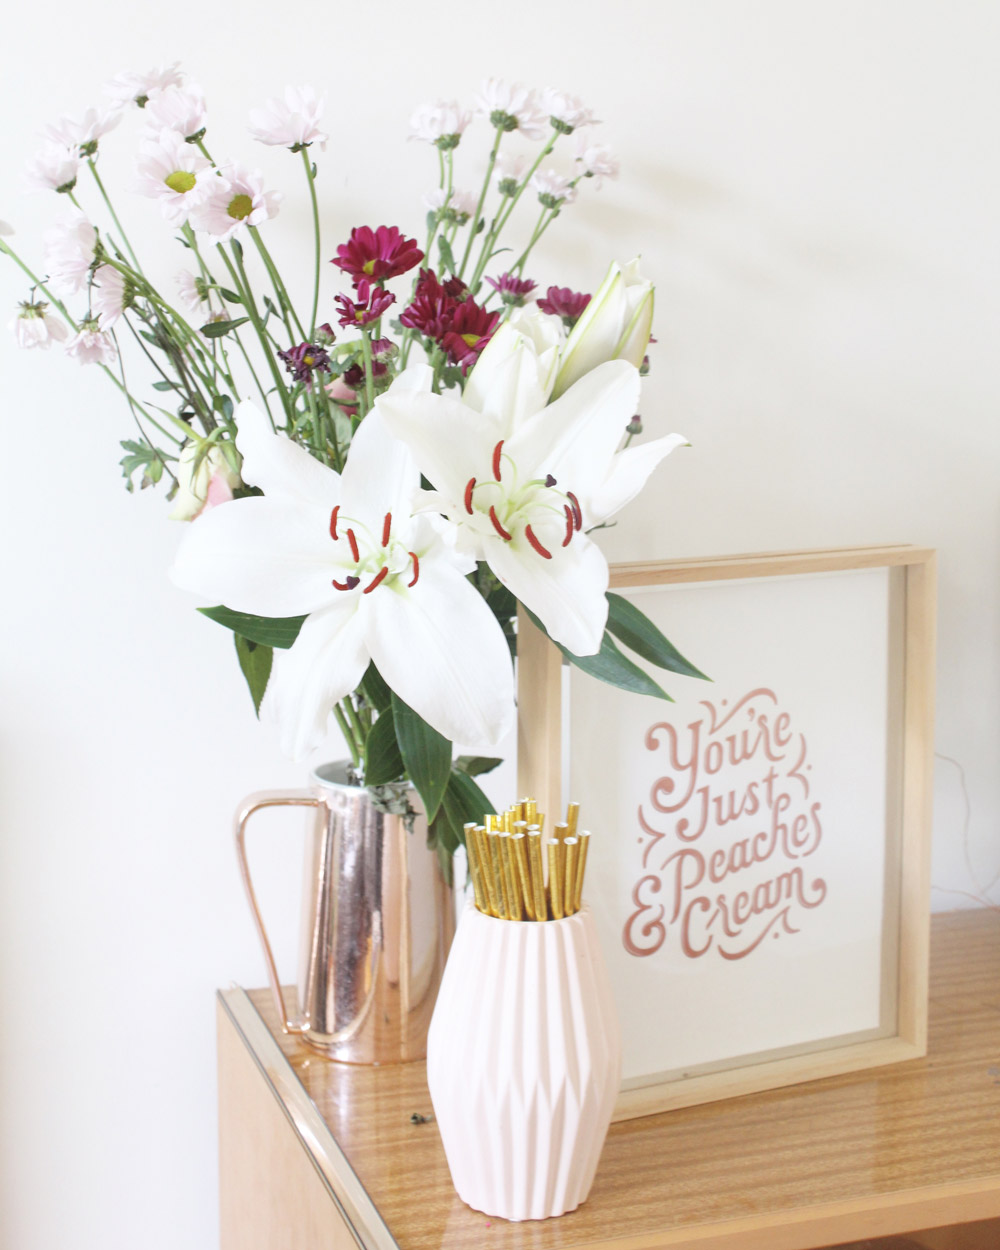 5-resons-to-buy-yourself-flowers.jpg